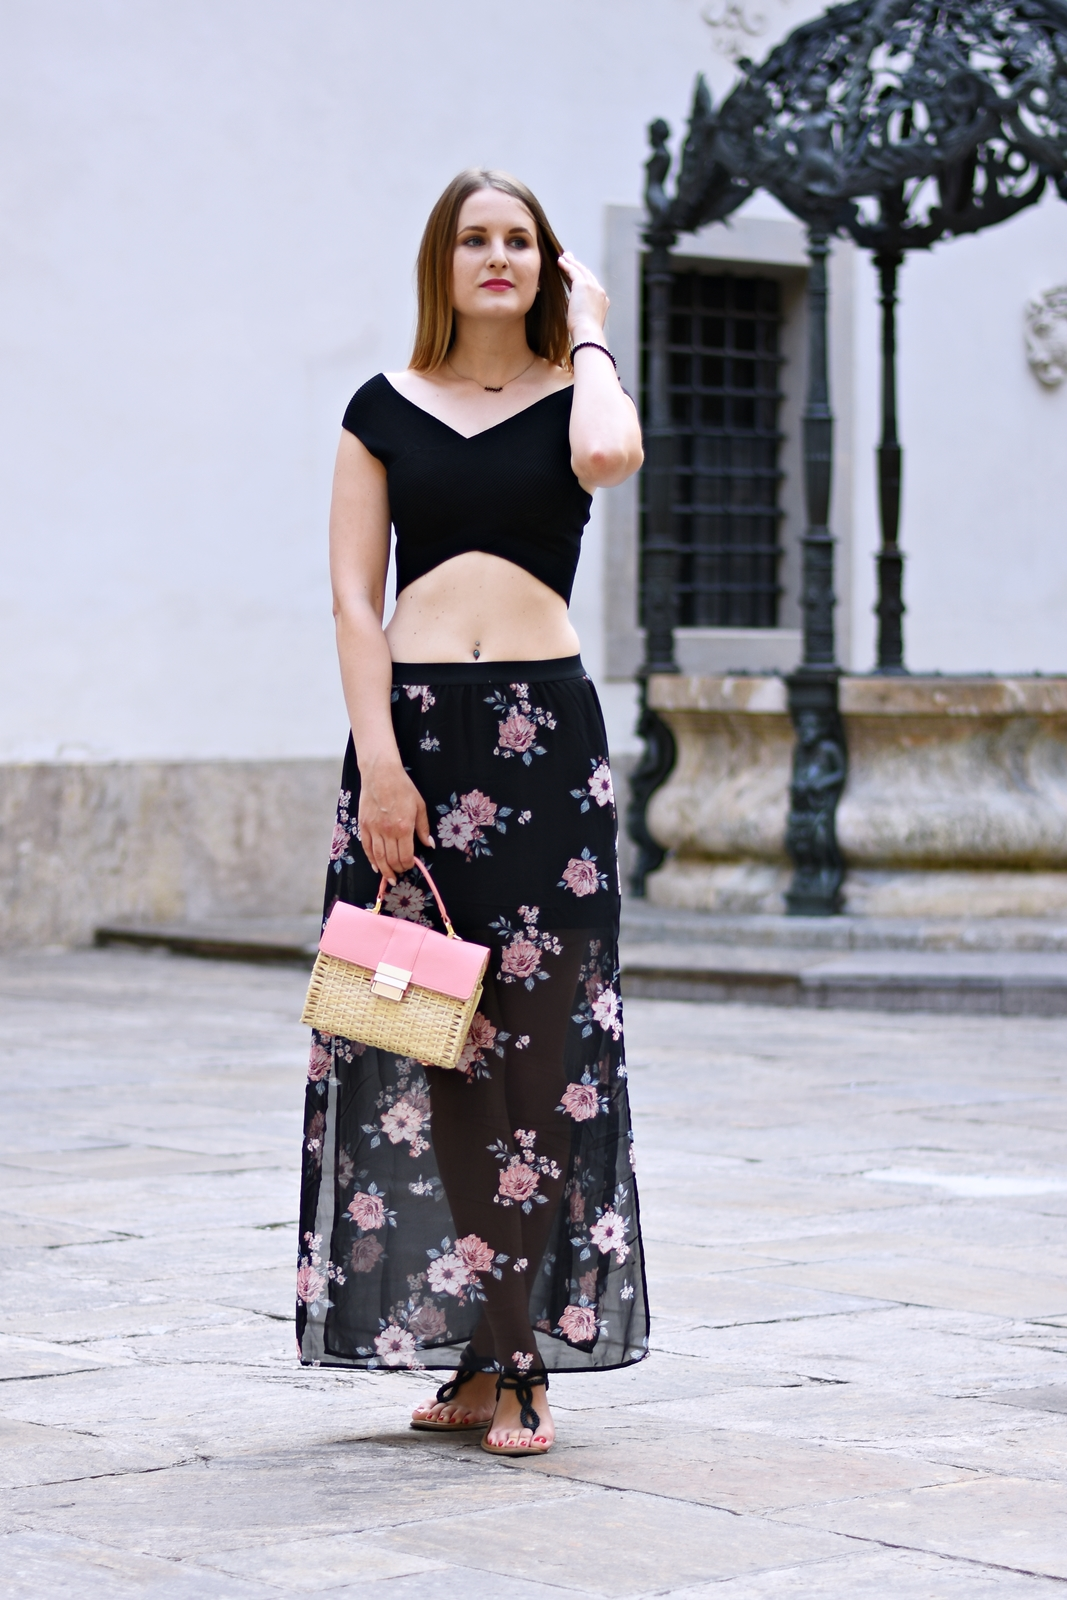 Der Maxirock - Blogparade - Outfit - Fashion - Summer Look - Style - Mode - Crop Top - Korbtasche - Fashionladyloves by Tamara Wagner - Fashionblog - Mode Blog